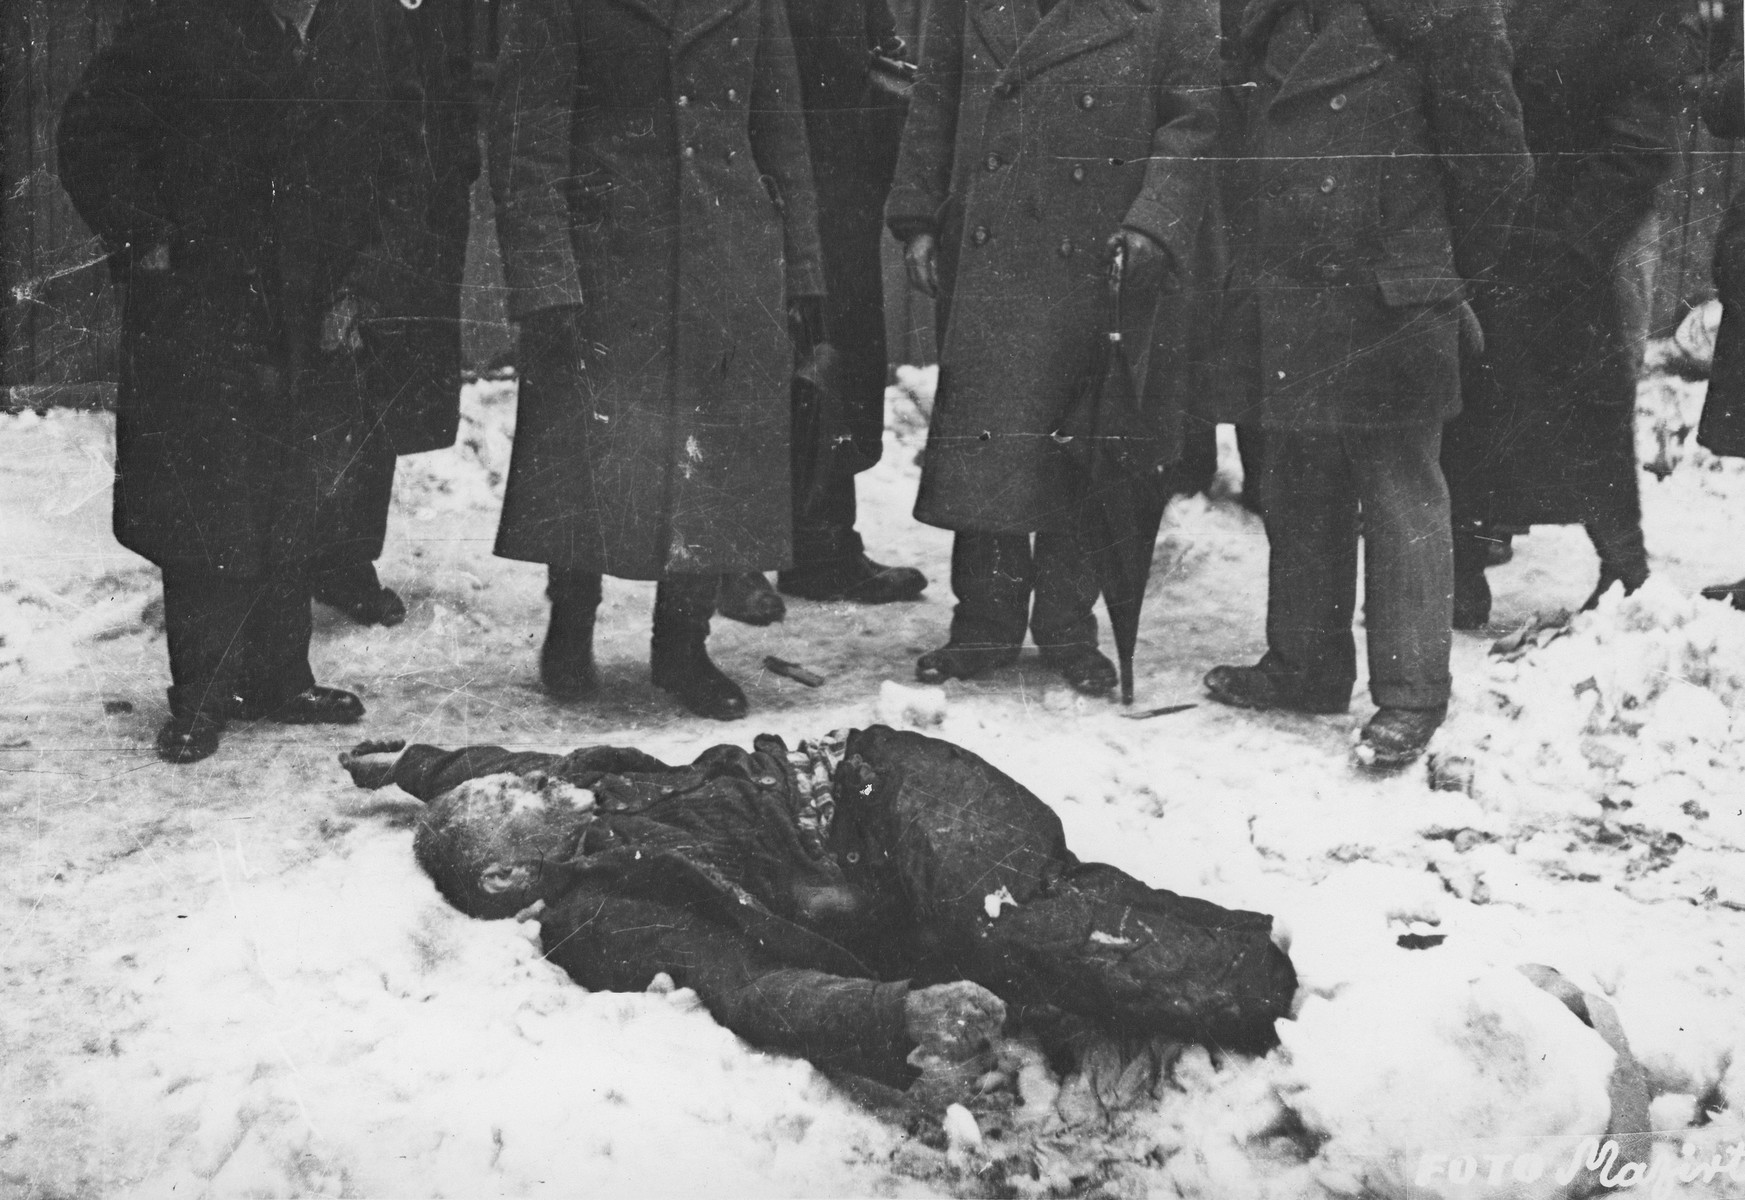 "Members of the Commission for the Investigation of Nazi and Arrow Cross Atrocities examine the body of a Jewish man killed in the Budapest ghetto.  During the last few months of the war in Hungary, the Nyilas (Arrow Cross) exploited the anarchic conditions in the areas still under their control to continue their excesses against the Jews.  This was particularly true in Budapest, despite the fact that the Soviet army had completely encircled the city by December 27, 1944.  The reign of terror that had begun with Szalaszi's assumption of power on October 15, 1944, went almost completely unchecked after the beginning of the Soviet siege on December 9.  Gangs of armed Nyilas--mostly teenagers--roamed the city hunting for Jews in hiding.  They searched them out in hospitals, shelters, homes outside the ghetto, in the International Ghetto, and in the large ghetto.  After robbing the Jews of their remaining valuables, the Nyilas shot them on the spot or marched them to the banks of the Danube, where they shot them, and threw their bodies into the river.  A large number of Jews who were murdered in the ghetto were buried in mass graves in the courtyard of the Dohany Street Synagogue.  The most horrific of these attacks occurred on the Pest side of the capital, at the two Jewish hospitals located on Maros and Varosmajor streets.  The Maros Street hospital, which had operated under the protection of the International Red Cross during the German occupation, was attacked on January 11, 1945.  After the initial melee, during which Nyilas gang members wantonly destroyed hospital equipment, threw patients out of their beds and trampled them, and murdered staff members, survivors were ordered to dig a mass grave, remove and bury the bodies.  They were then shot and buried in the grave themselves.  Only one nurse survived of the 92 people that were in the hospital at the time.  Three days later, on January 14, the hospital on Varosmajor Street was attacked, resulting in the deaths of 150 patients and medical staff.  These manhunts and massacres continued unabated until the liberation of Budapest in April.  [R. Braham, ""The Politics of Genocide,"" vol. 2: 995-1007]"